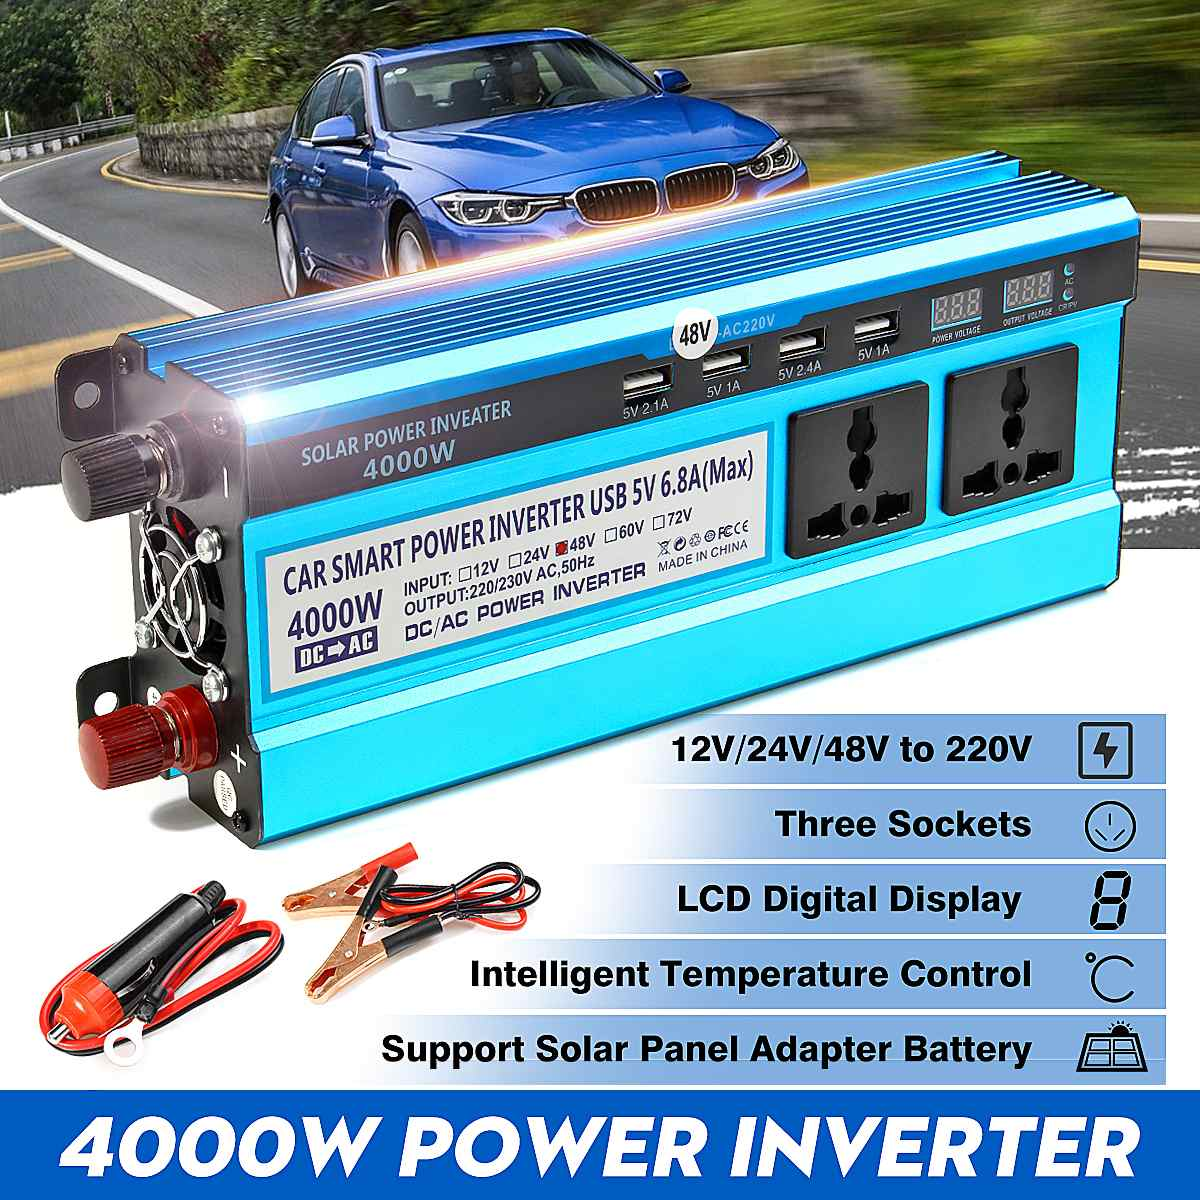 Image 2 - Solar Inverter DC 12V 24V 48V to AC 220V 3000W 4000W 5000W Inverter Voltage Transformer Converter 4 USB LED Display for Car Home-in Inverters & Converters from Home Improvement